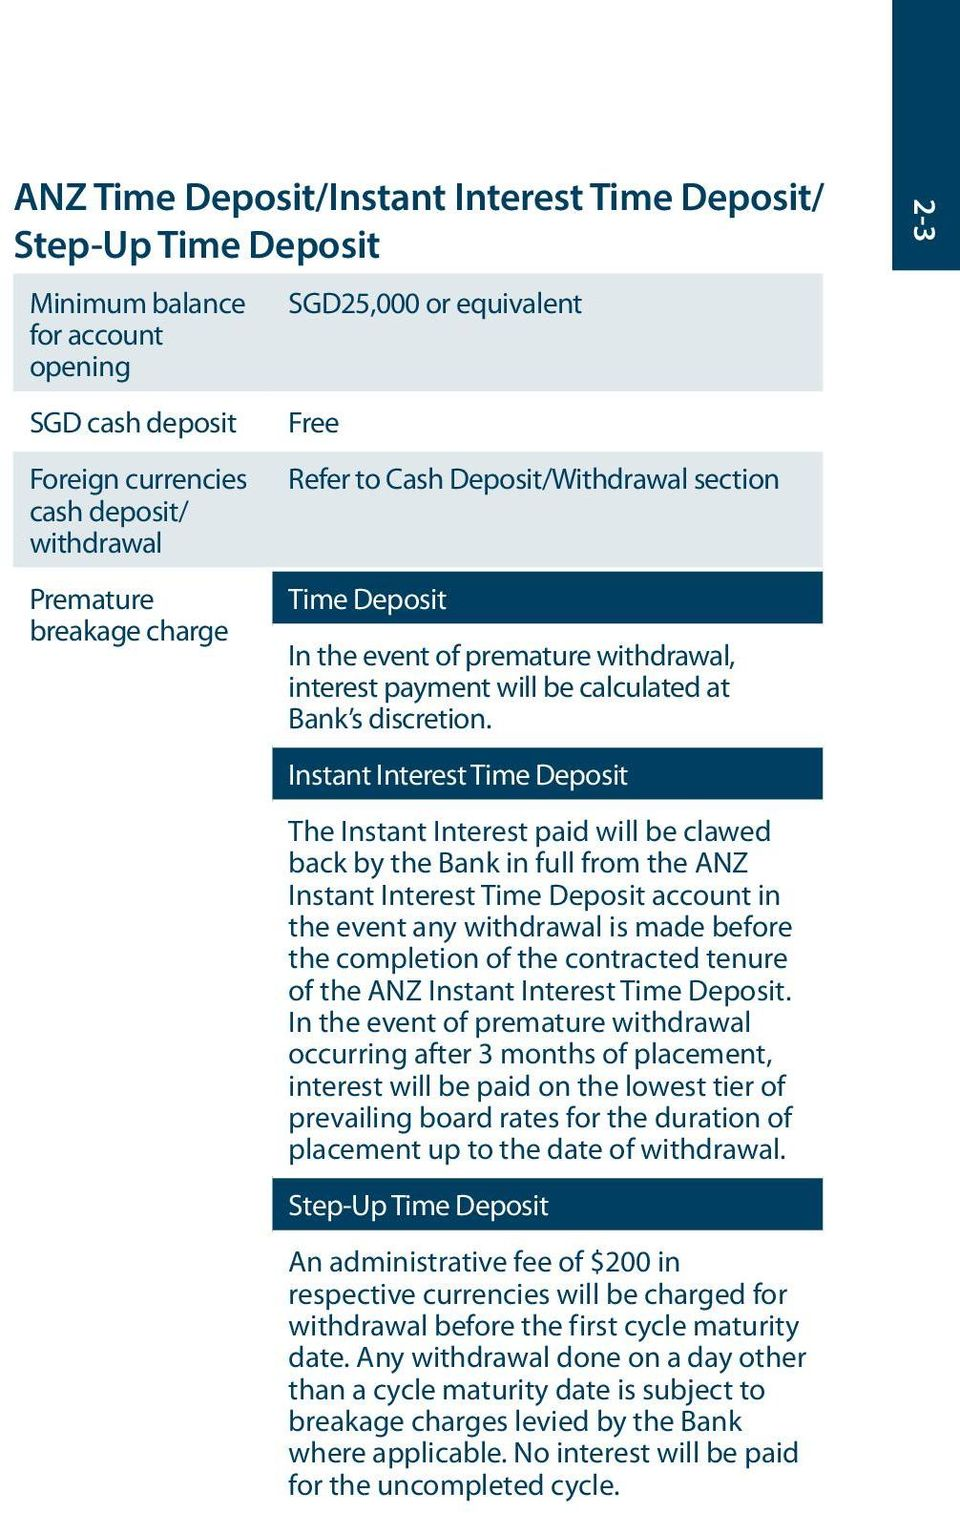 Instant Interest Time Deposit The Instant Interest paid will be clawed back by the Bank in full from the ANZ Instant Interest Time Deposit account in the event any withdrawal is made before the